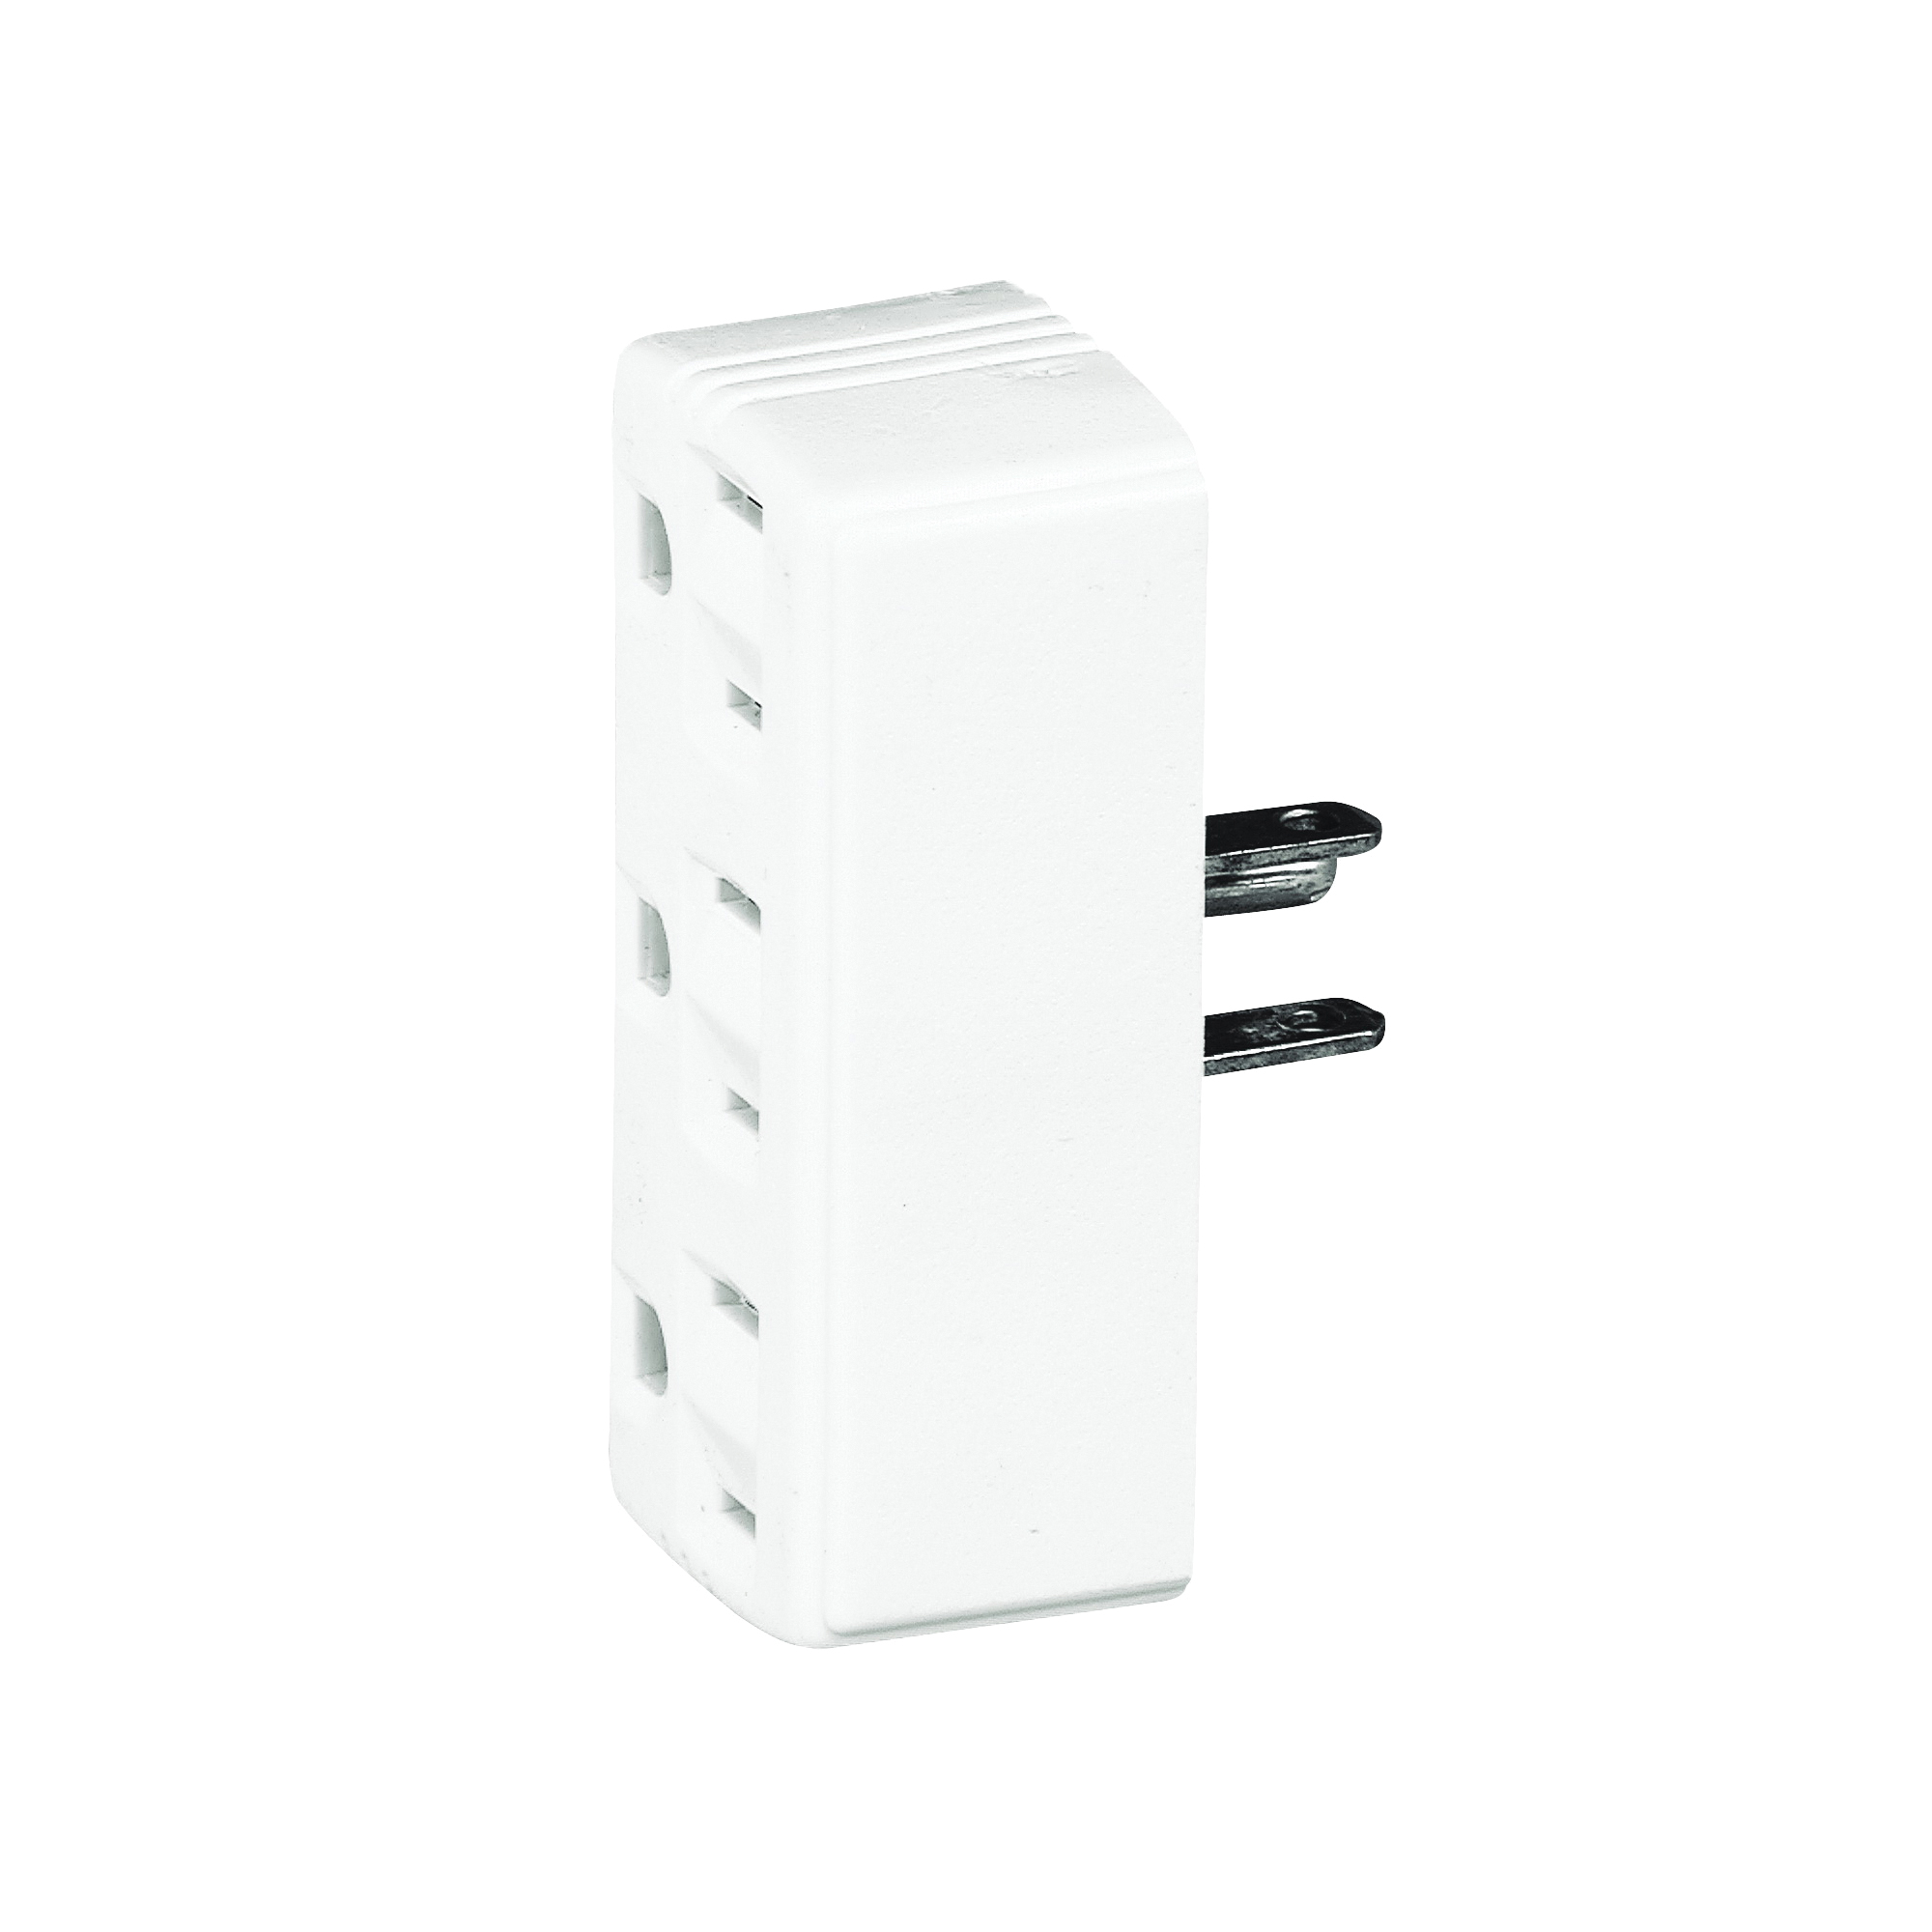 Picture of Eaton Wiring Devices 1147W-BOX Outlet Adapter, 2-Pole, 15 A, 125 V, 3-Outlet, NEMA: 5-15R, White